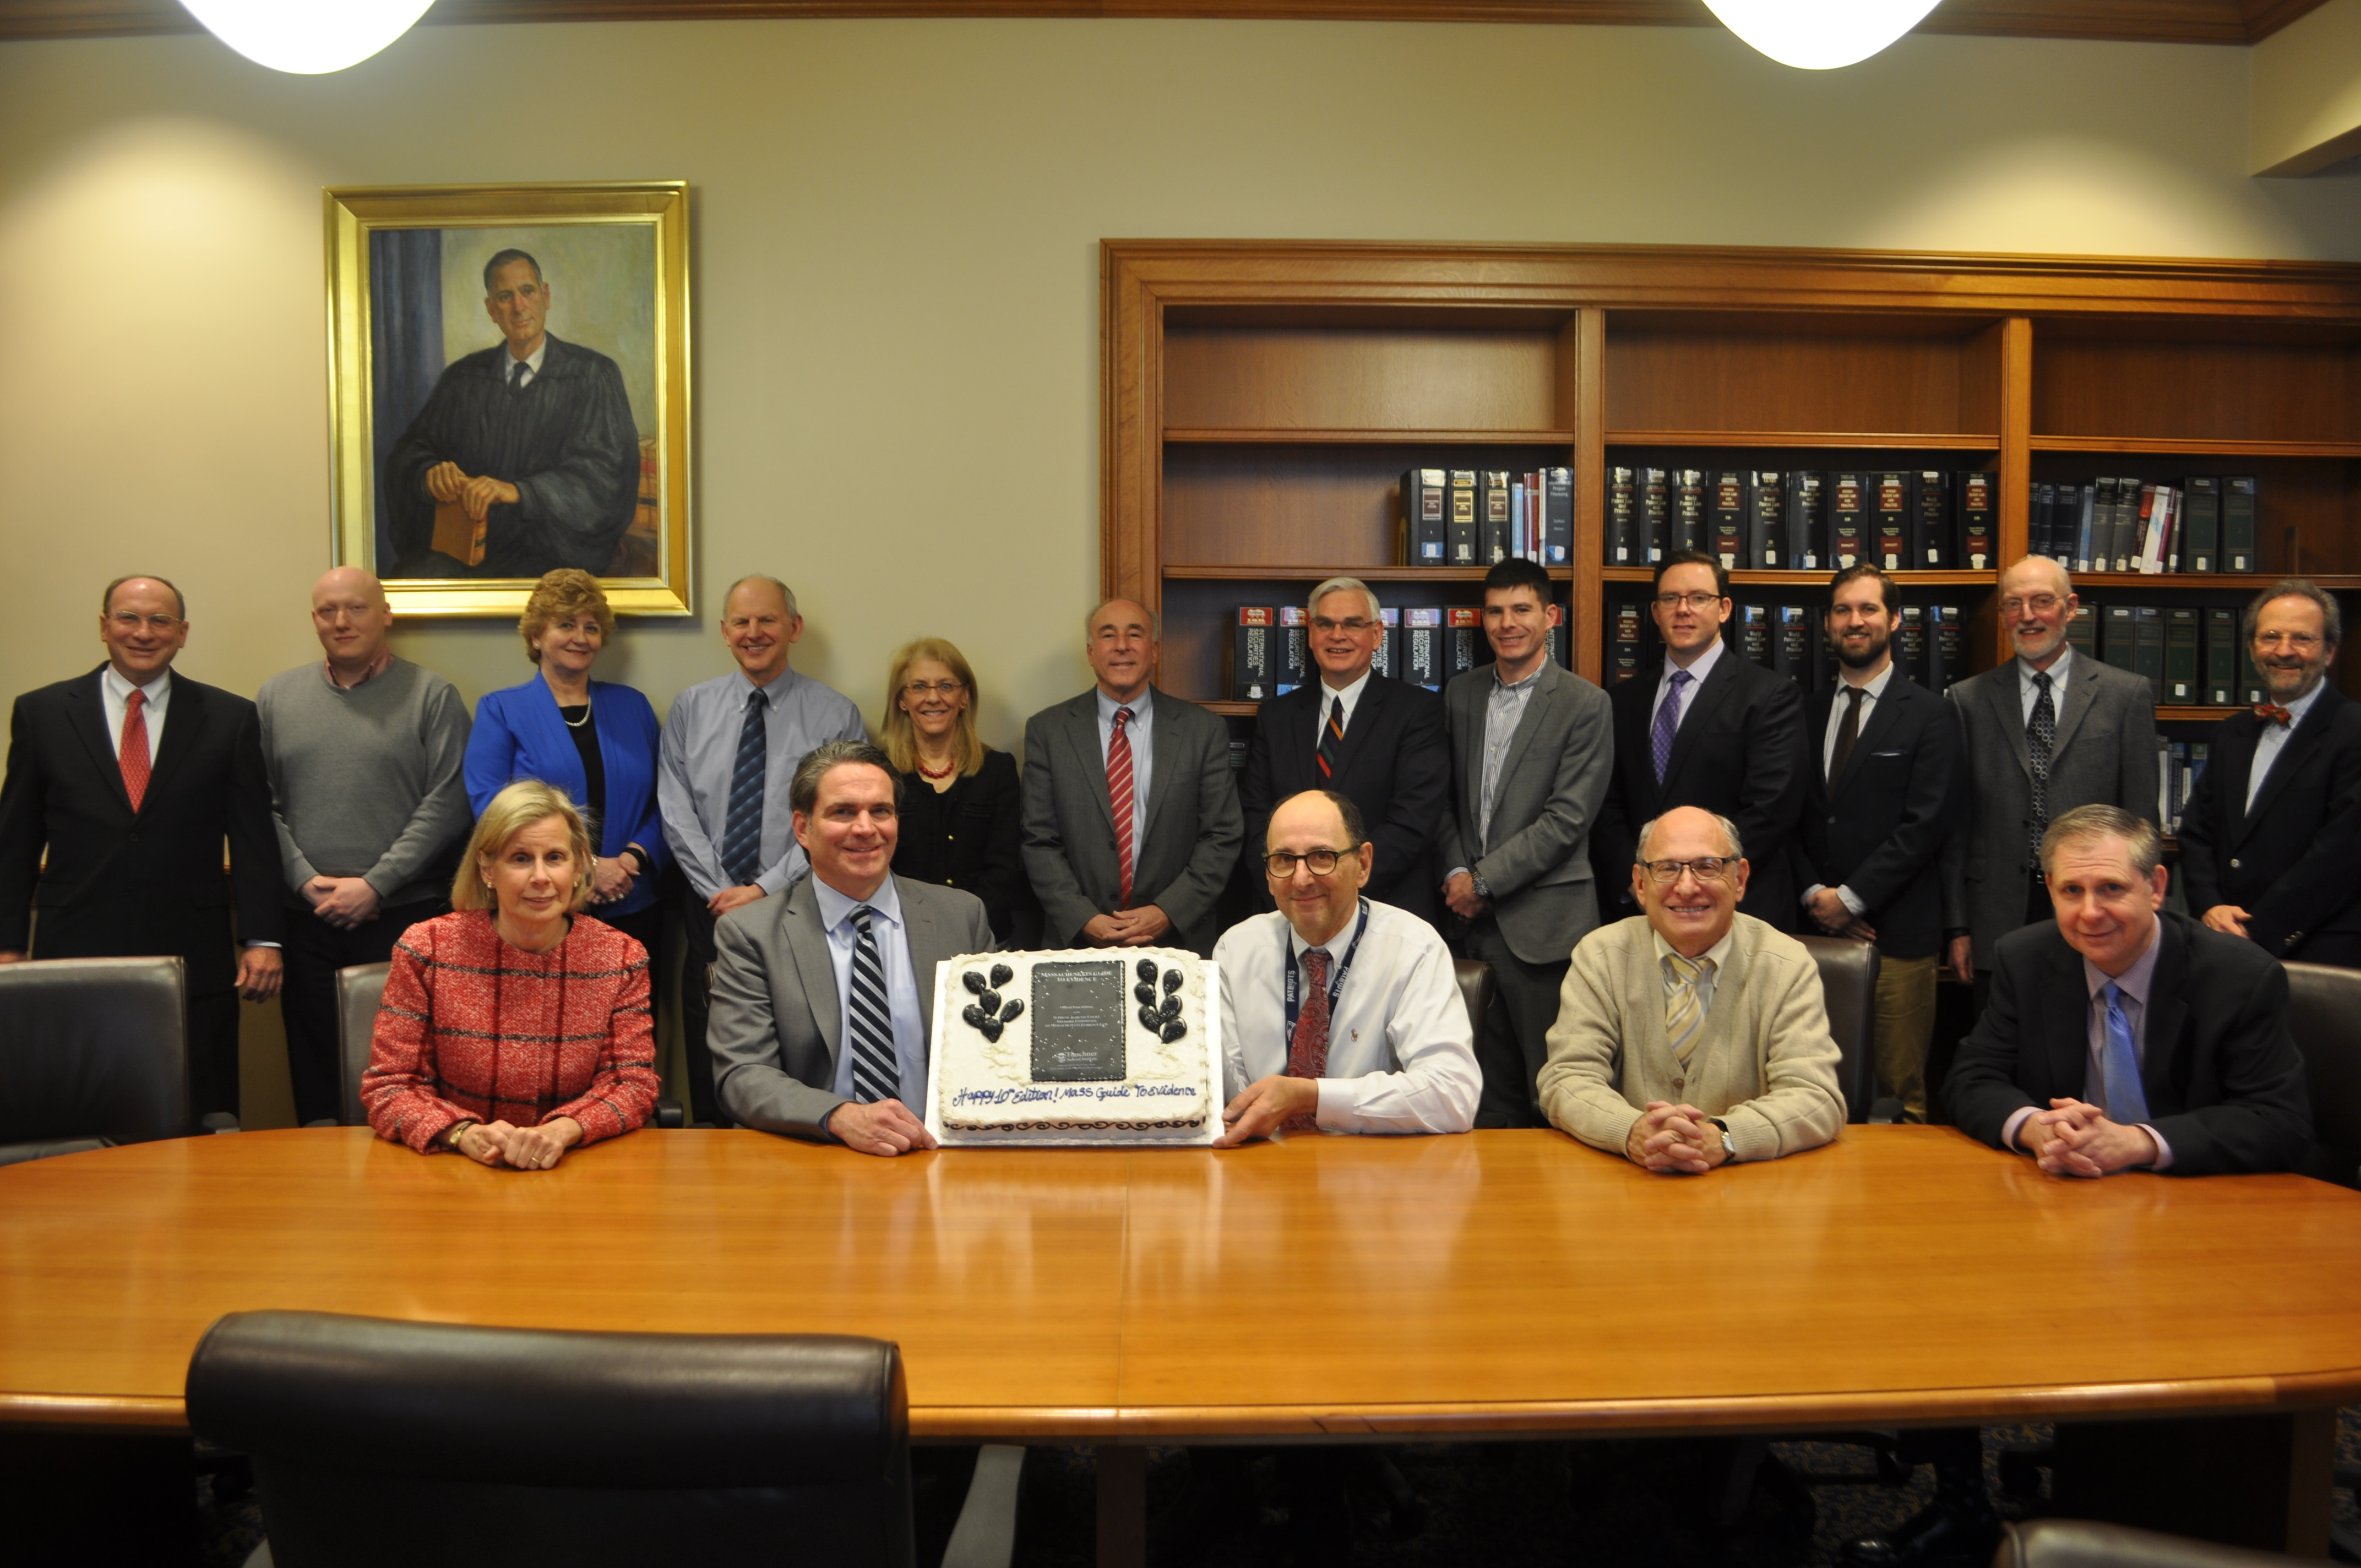 Members of the committee celebrated the publication of the tenth edition of the Massachusetts Guide to Evidenc.